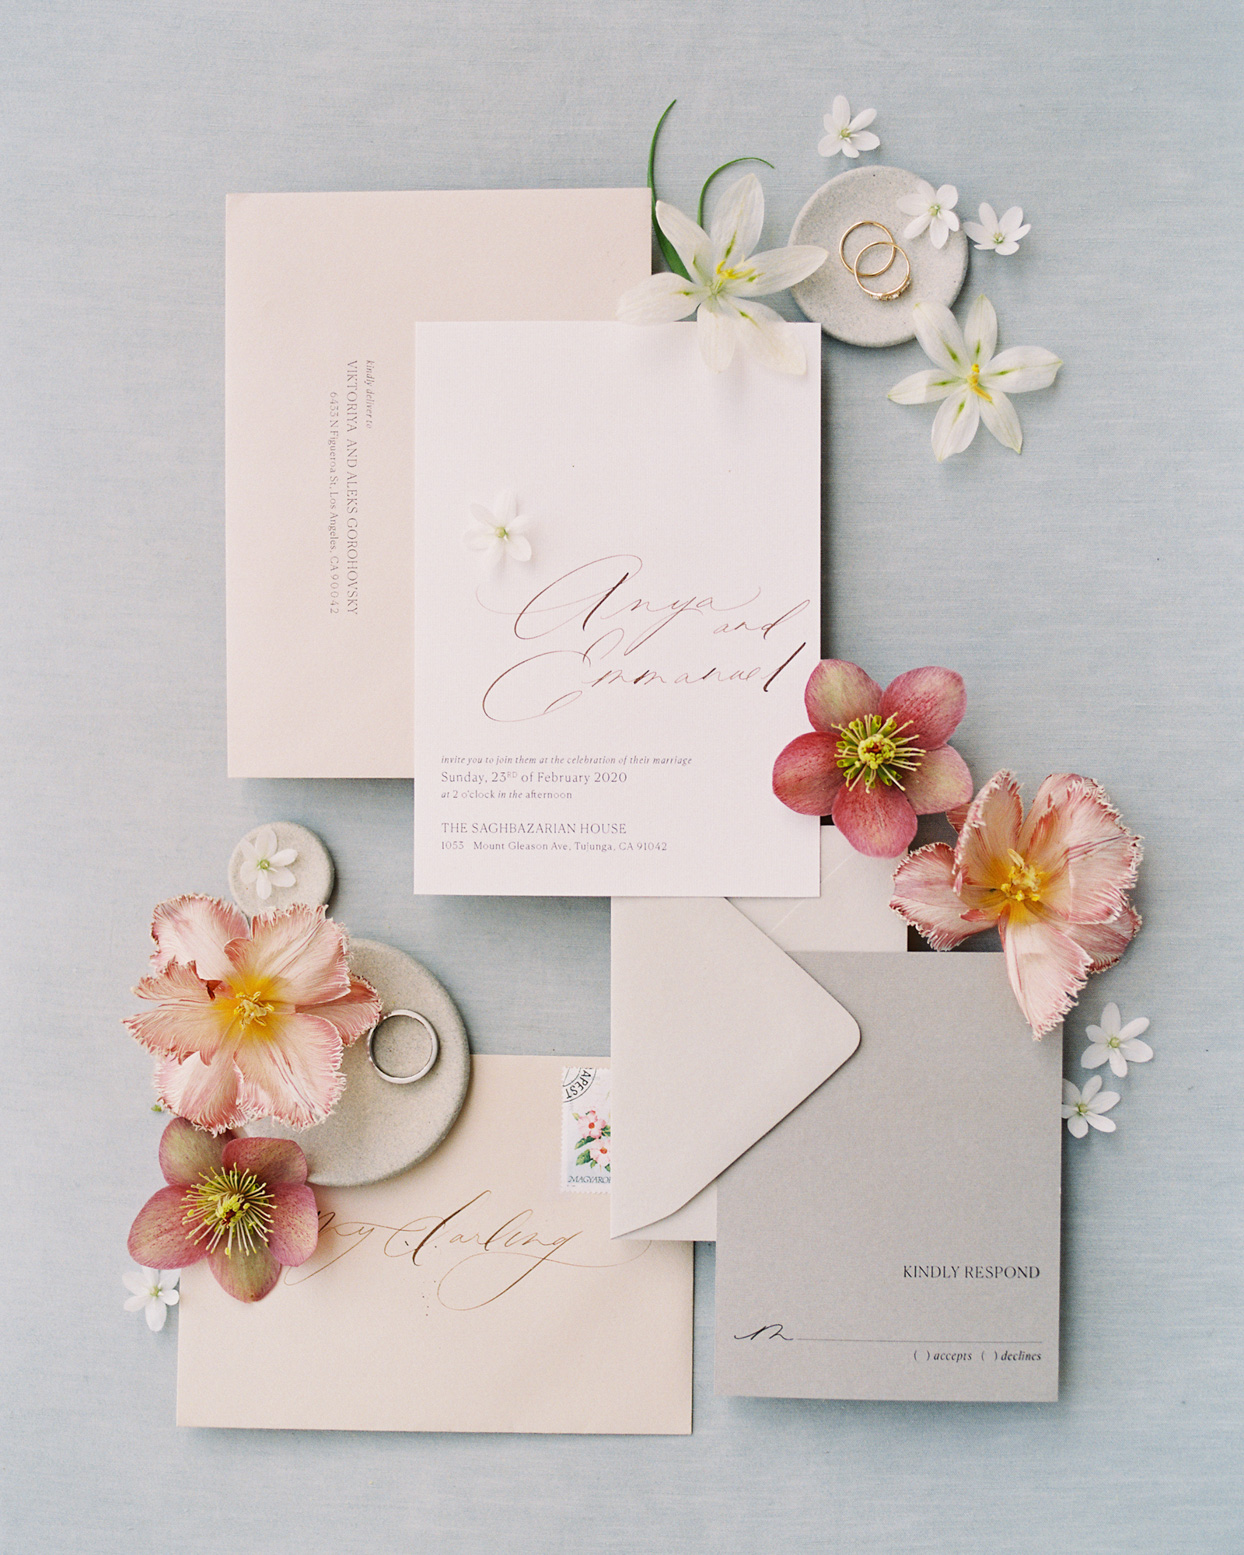 simple white, cream, and pink wedding invitations